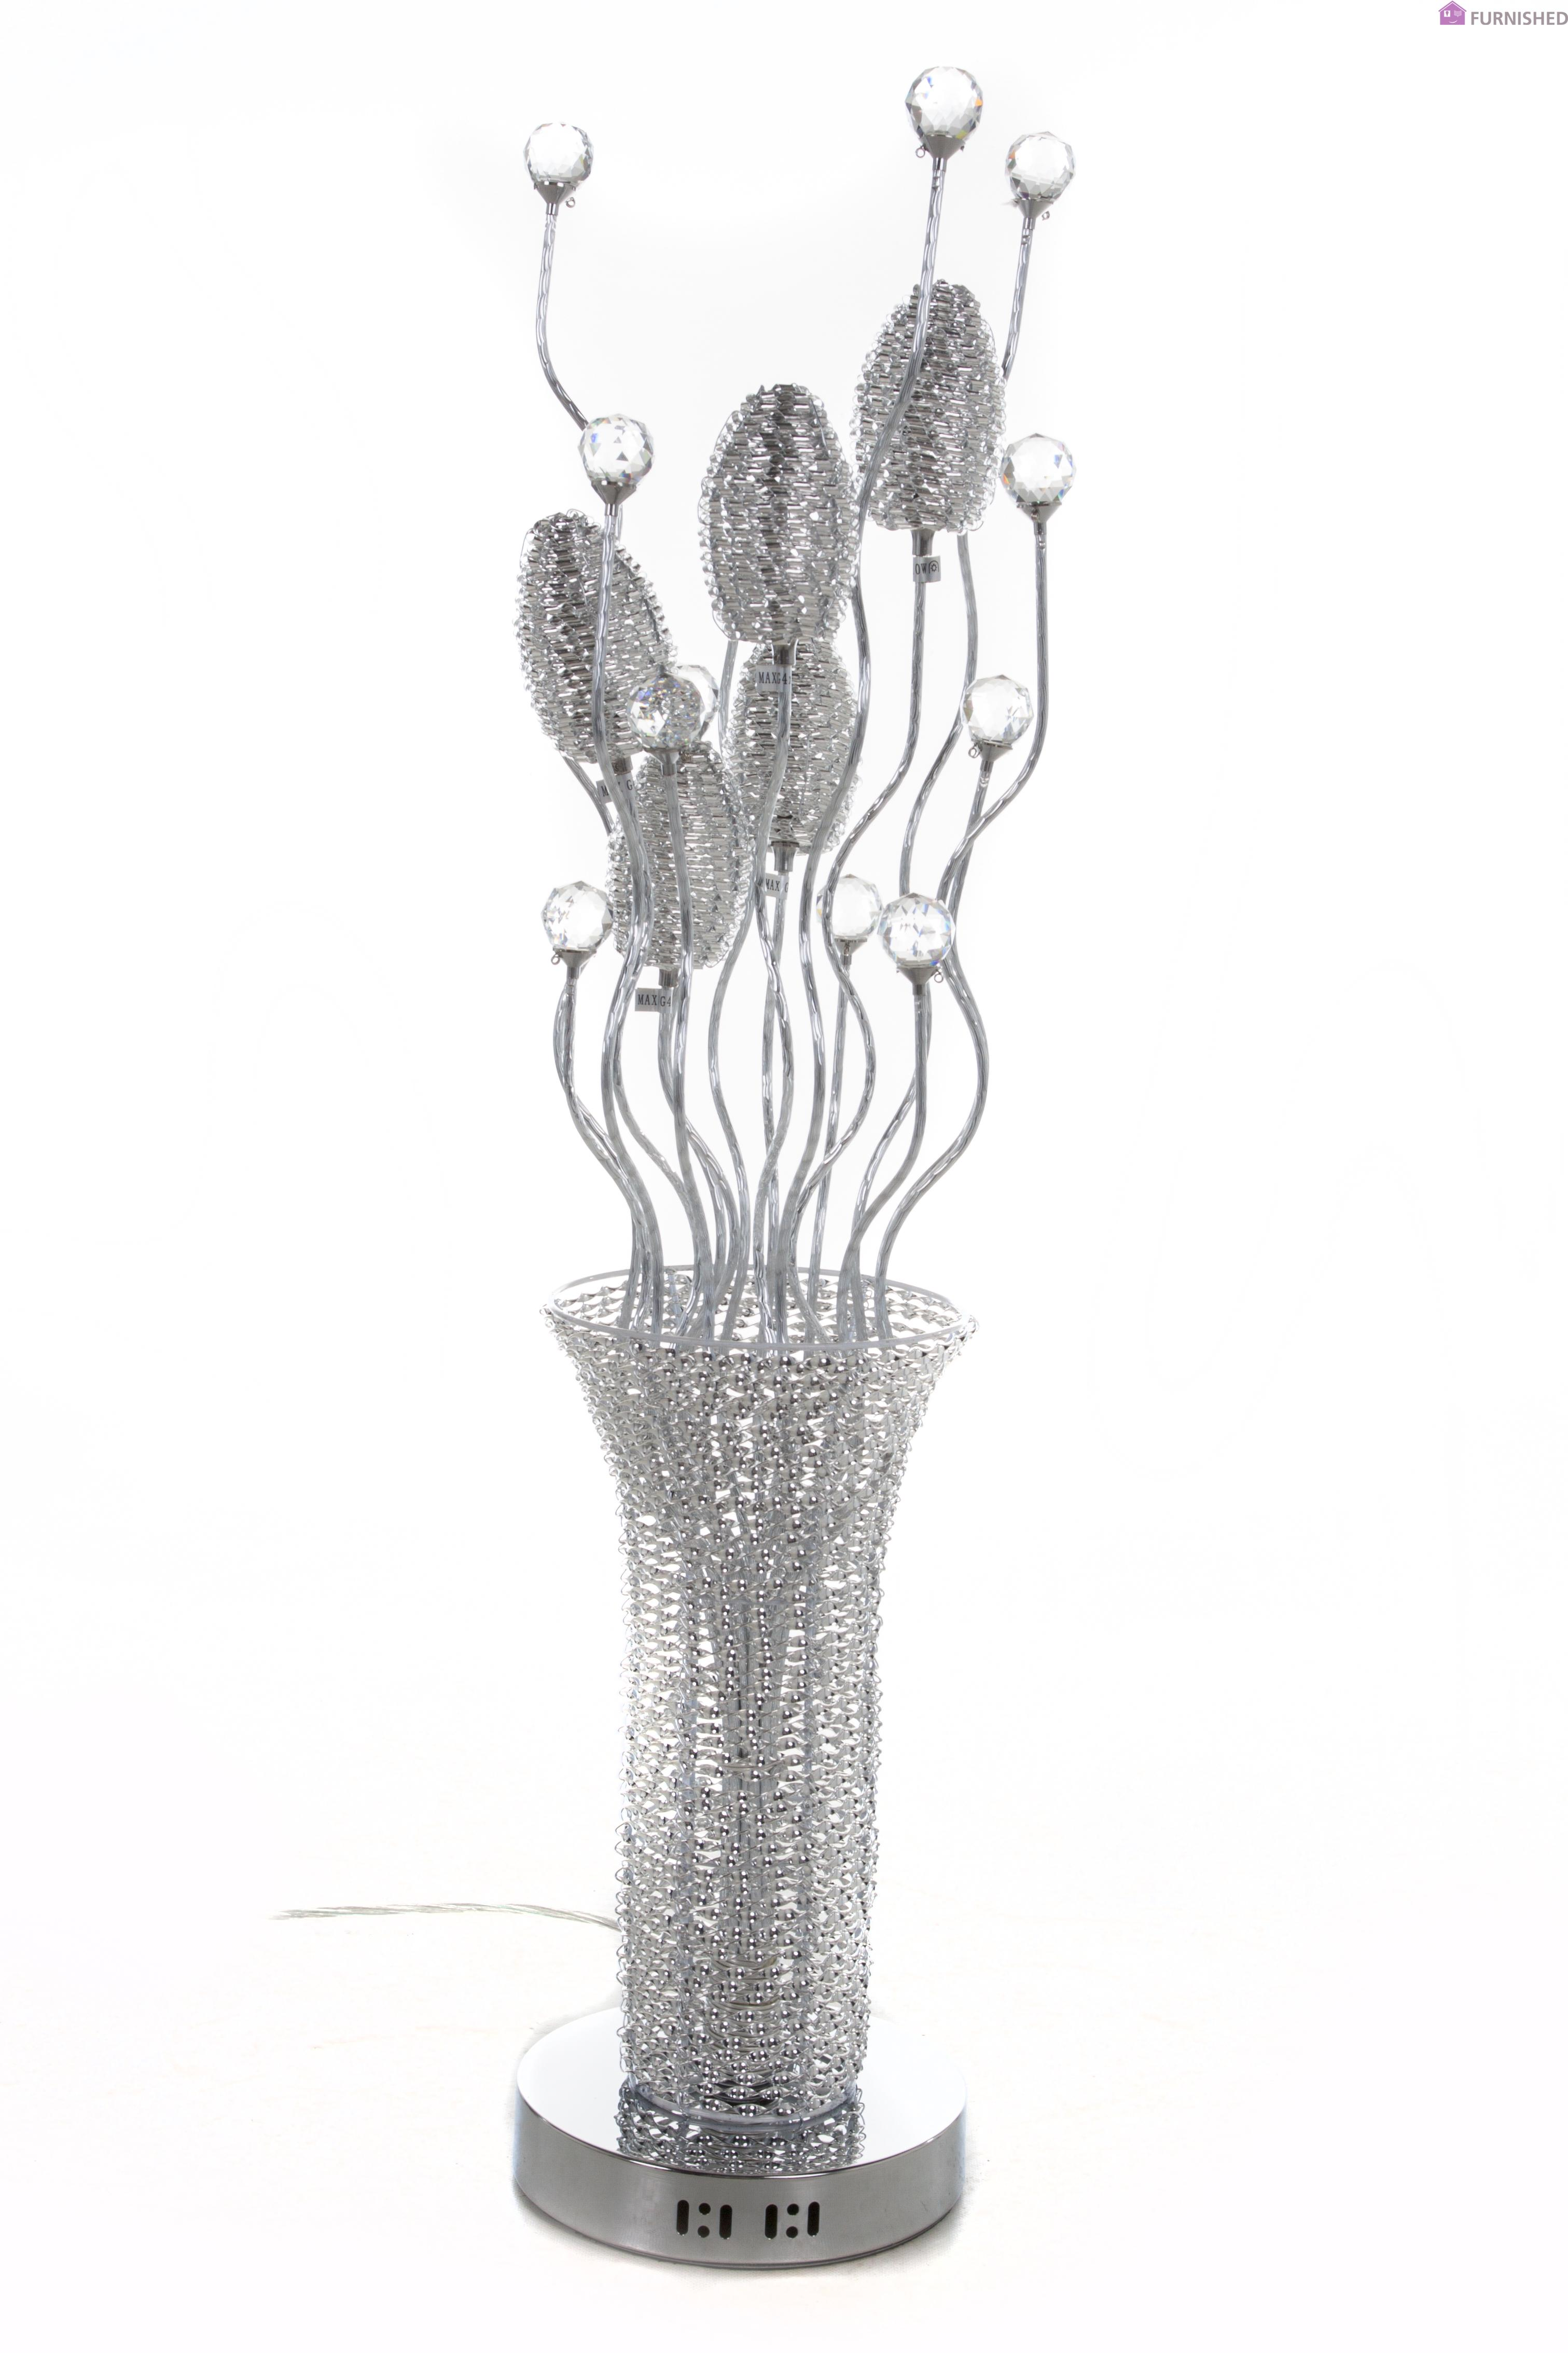 decor accents decorative flower accessories home crystal and enlarged baccarat products vase